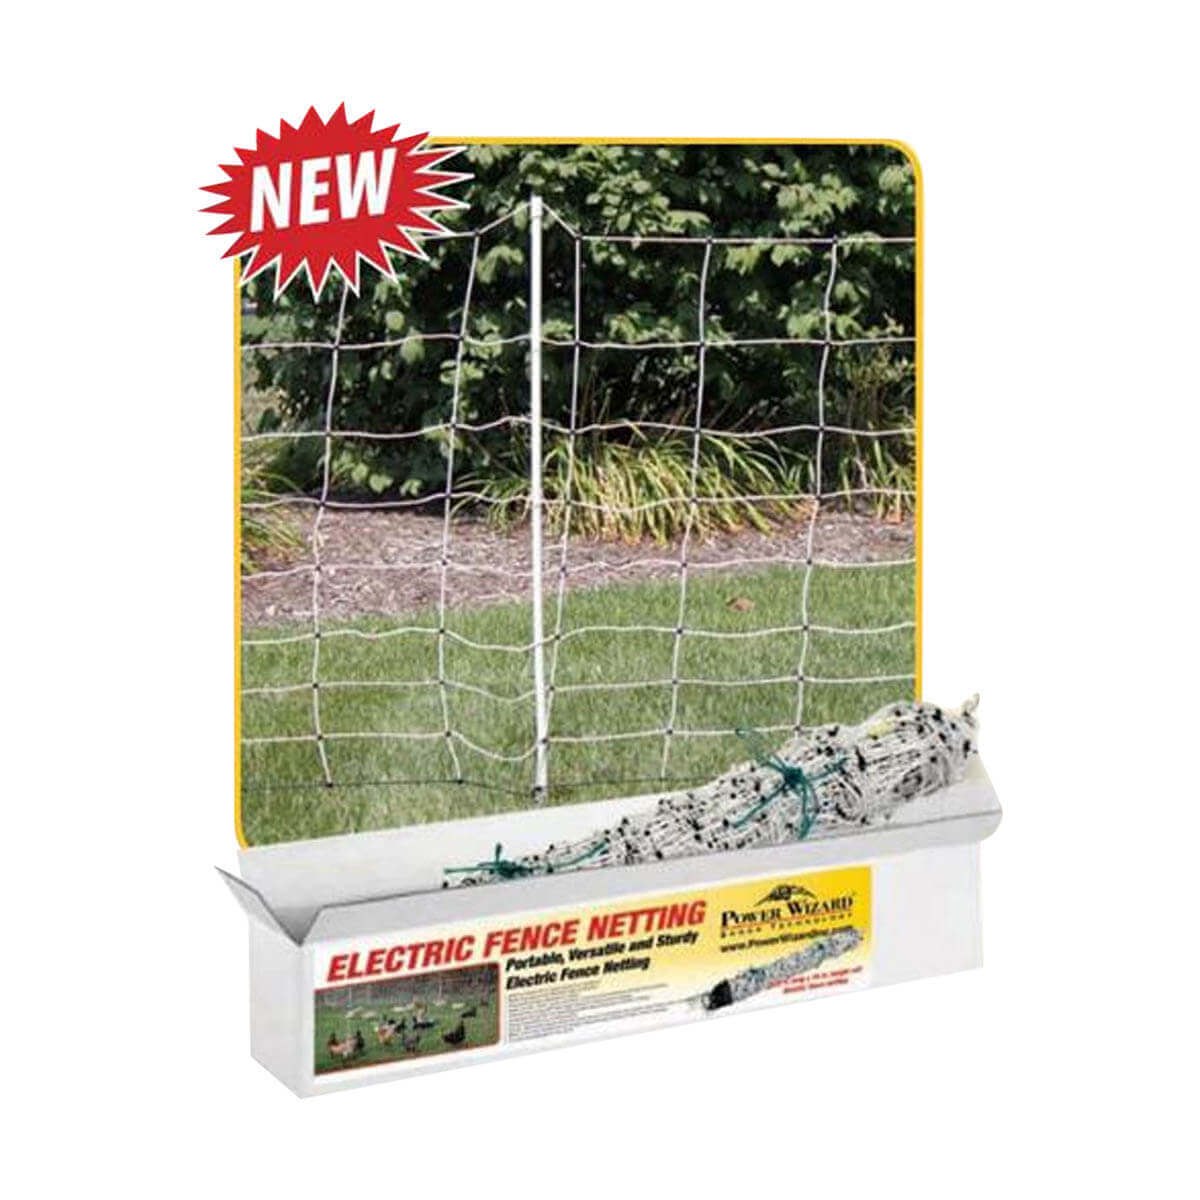 Power Wizard Electric Fence Netting - 120' L x 34' H